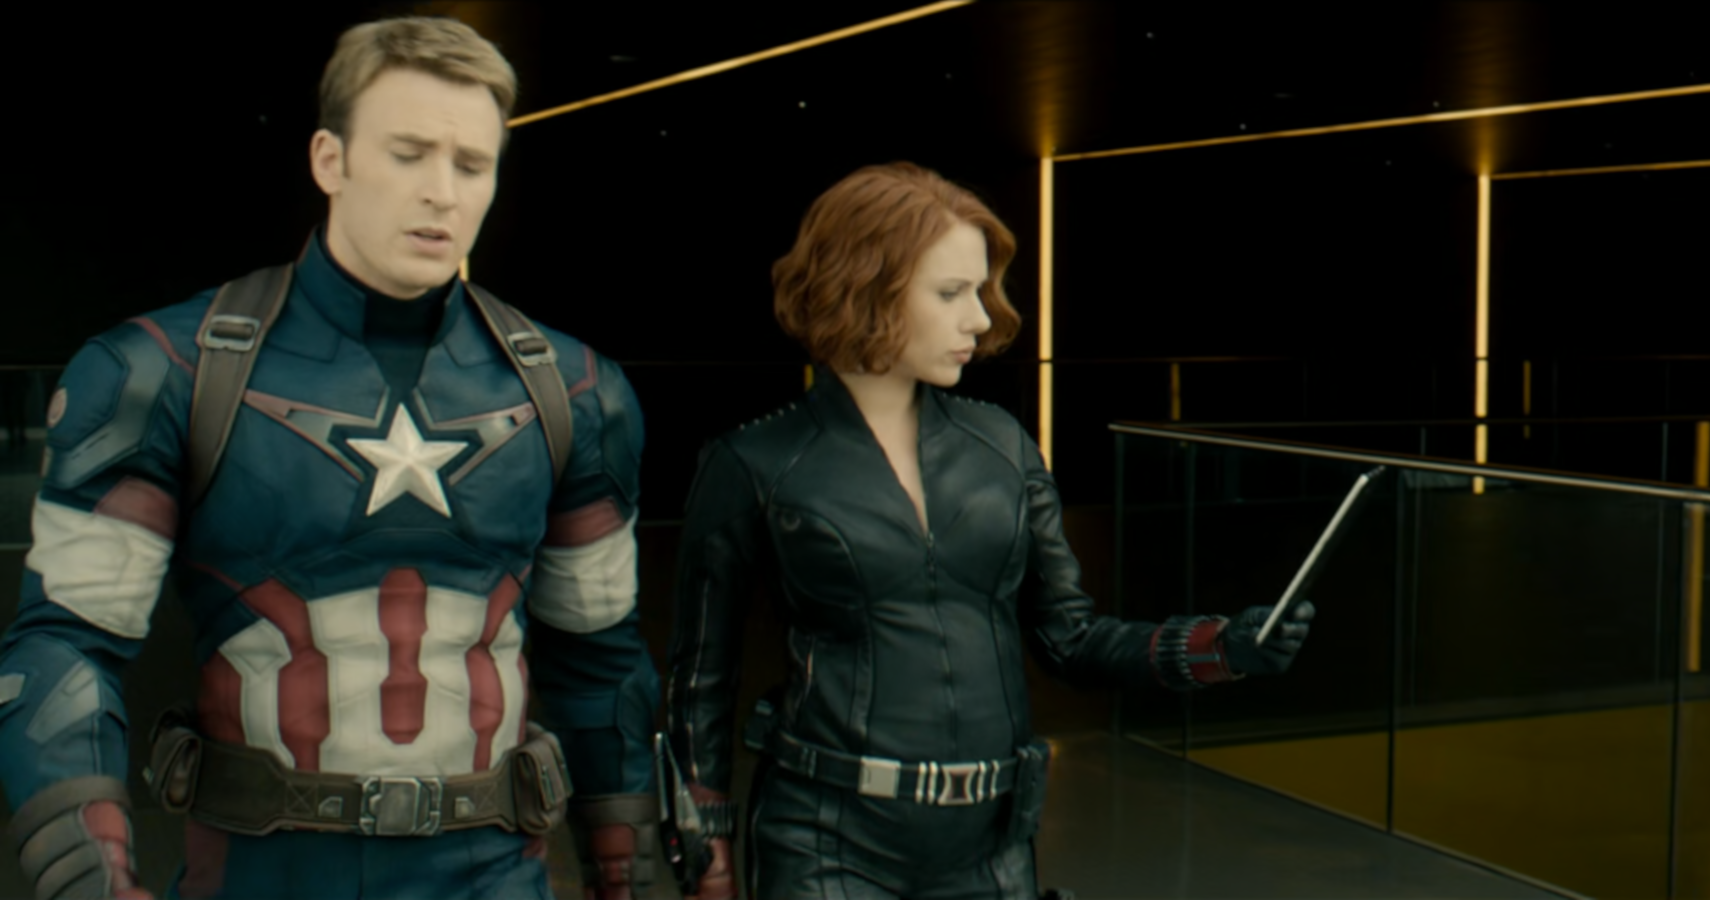 New Avengers Age Of Ultron Outtakes Show Black Widow Pregnant